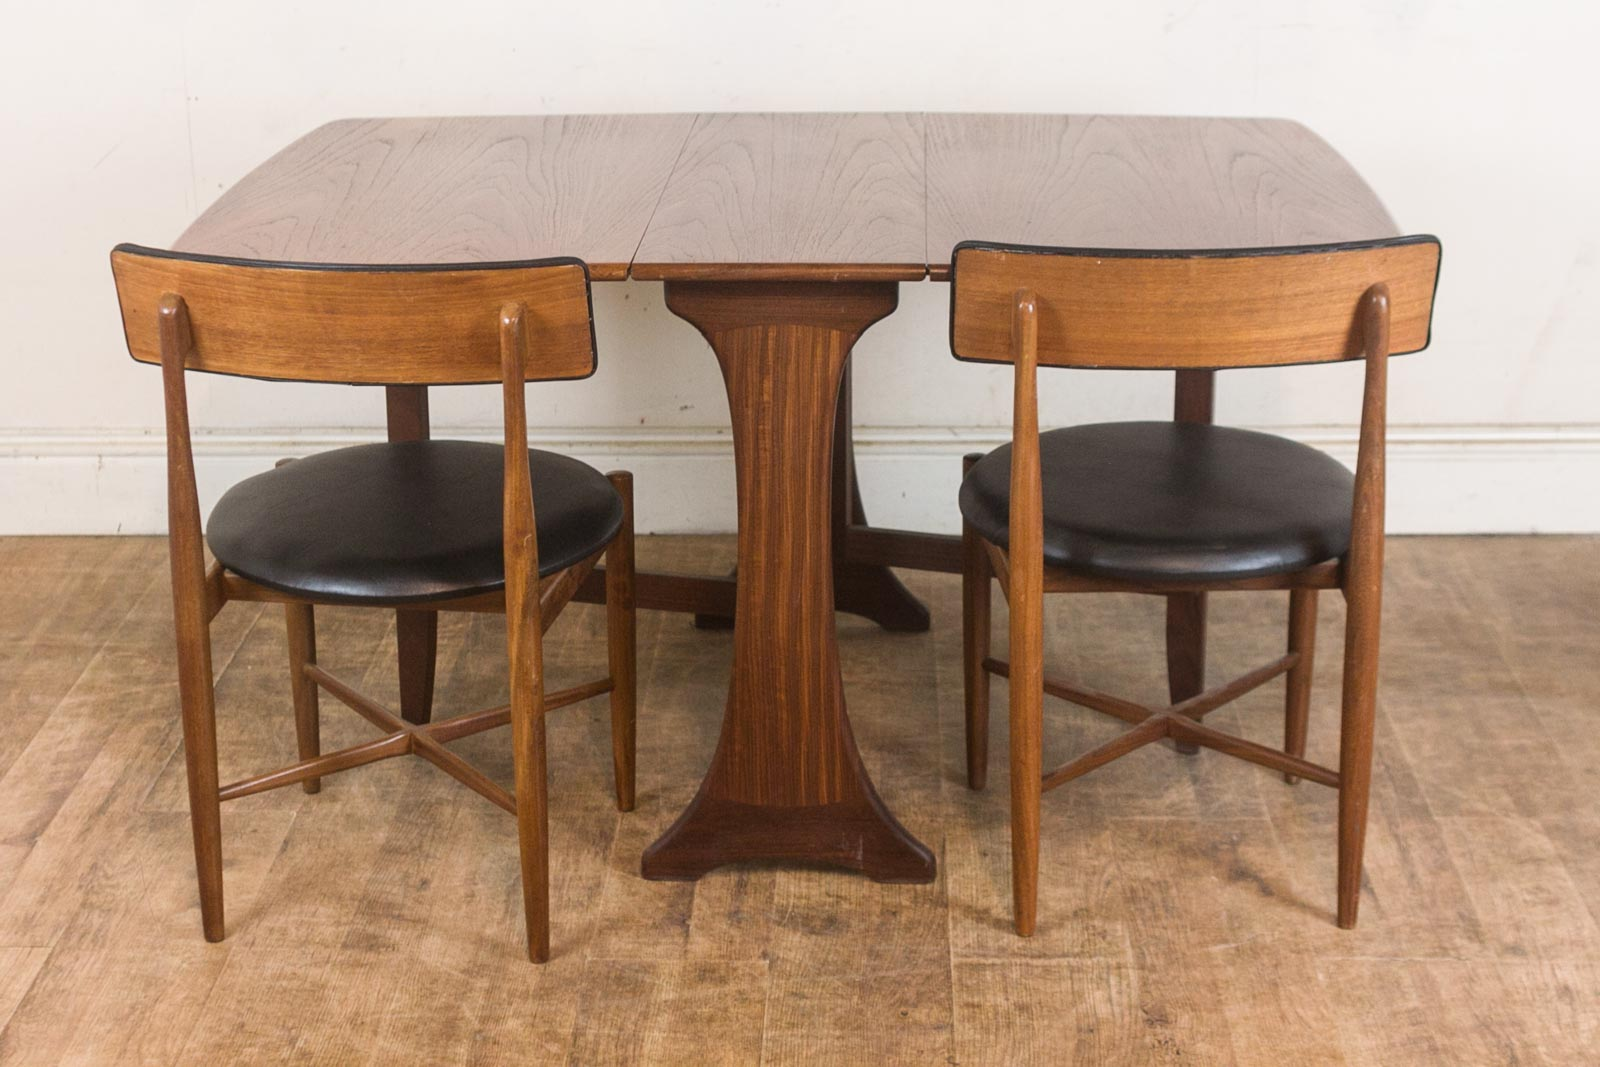 Vintage Retro G Plan Teak Drop Leaf Dining Table and 2  : hV040620 1 from www.ebay.co.uk size 1600 x 1067 jpeg 204kB